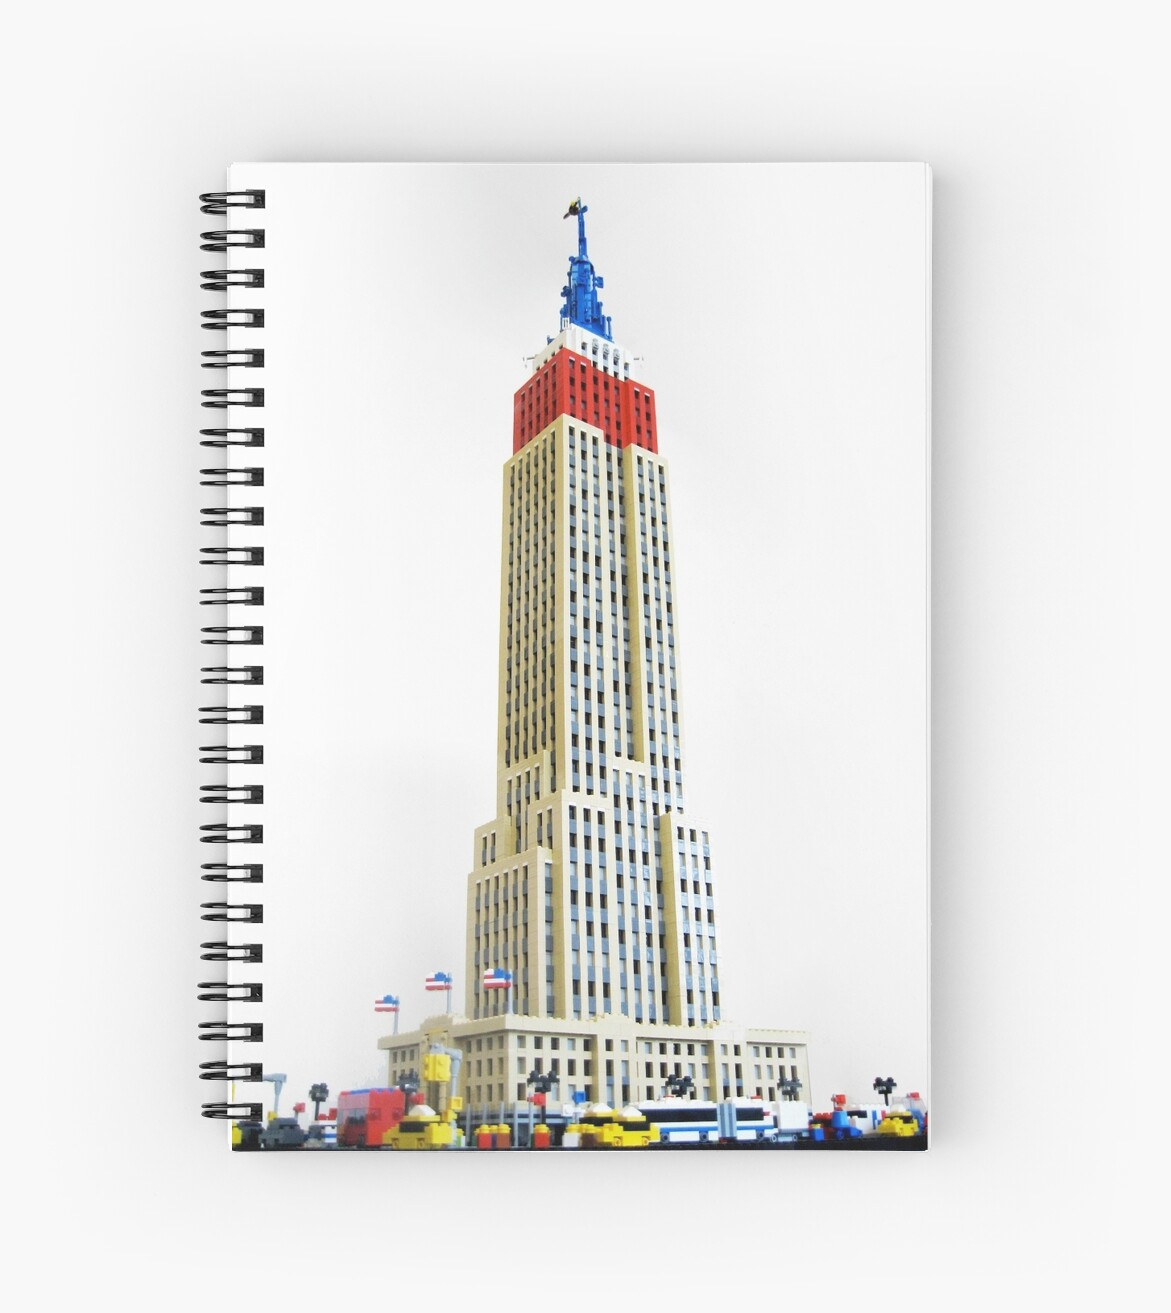 Empire State Building by Sean Kenney